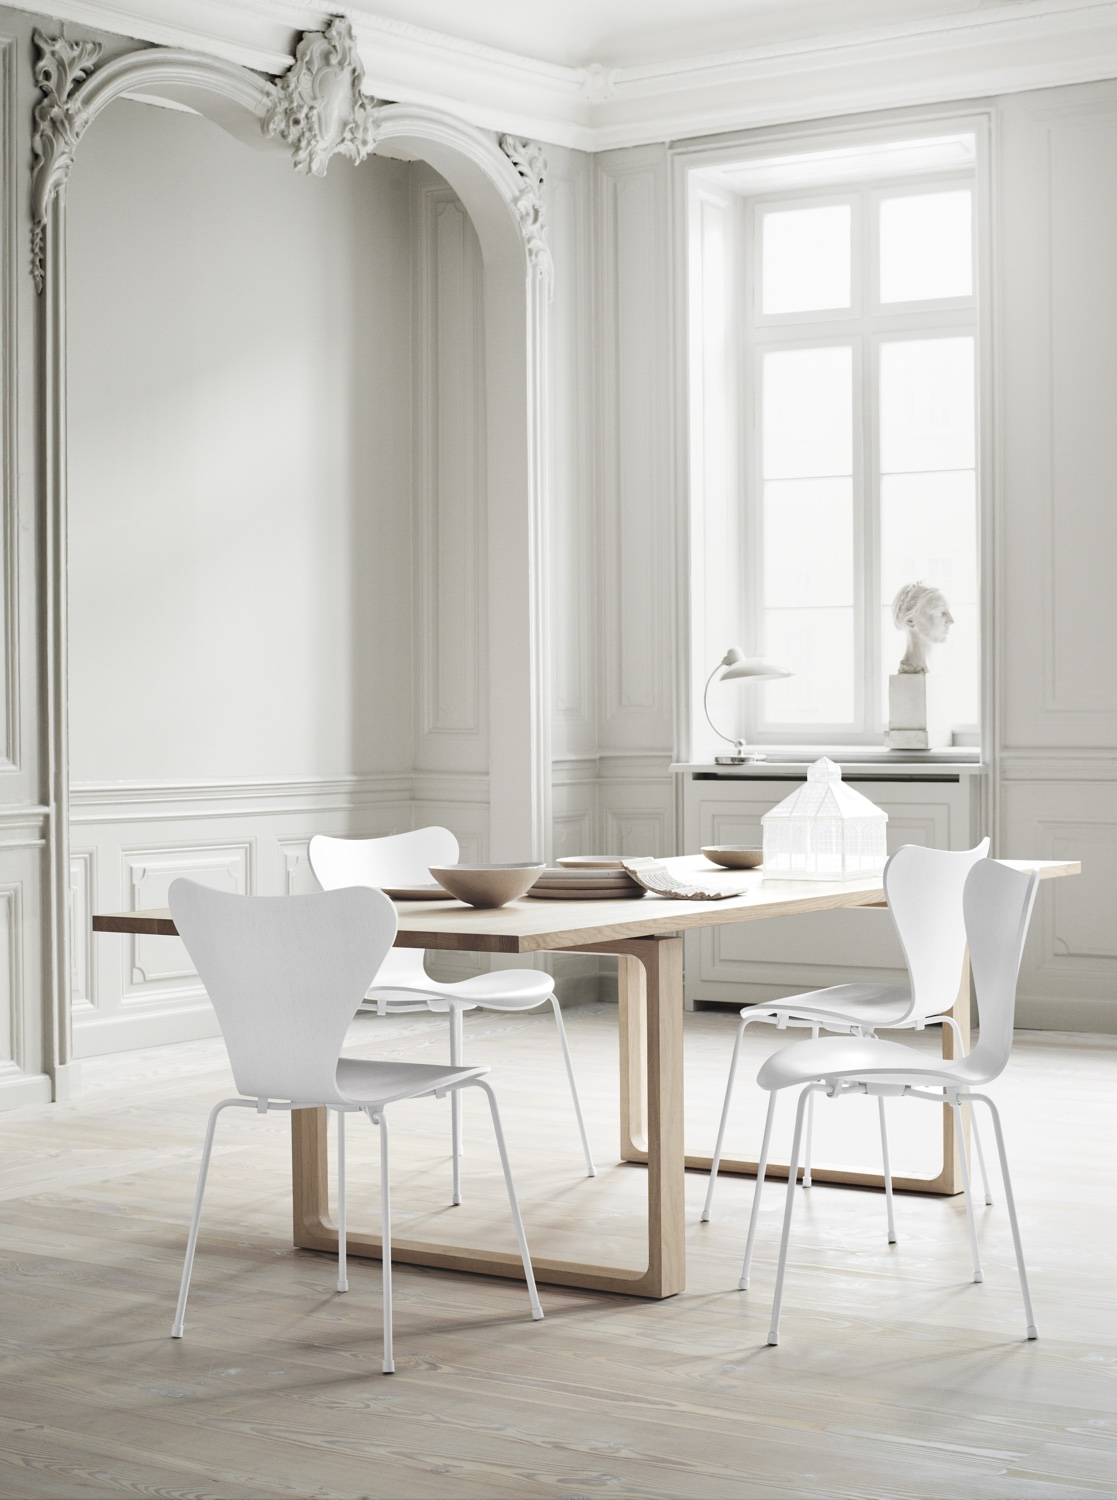 Series 7™ in white.Photo byDitte Isager.